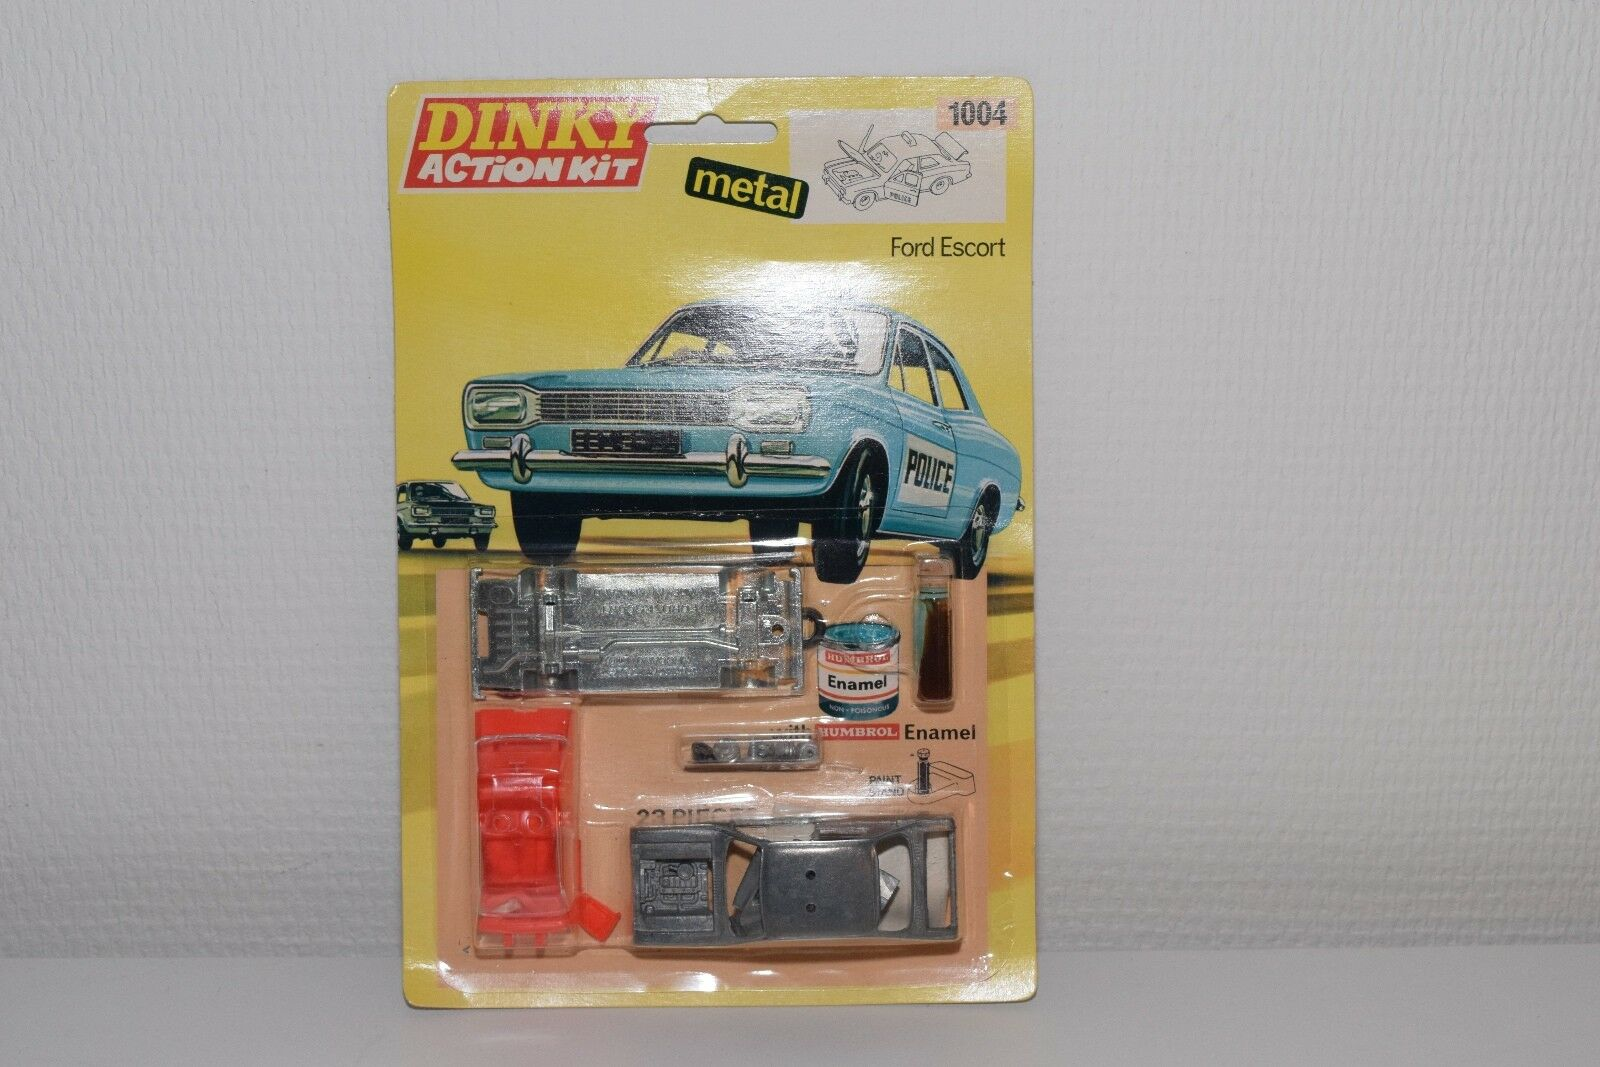 DINKY TOYS KIT 1004 FORD ESCORT PANDA POLICE CAR MINT BOXED